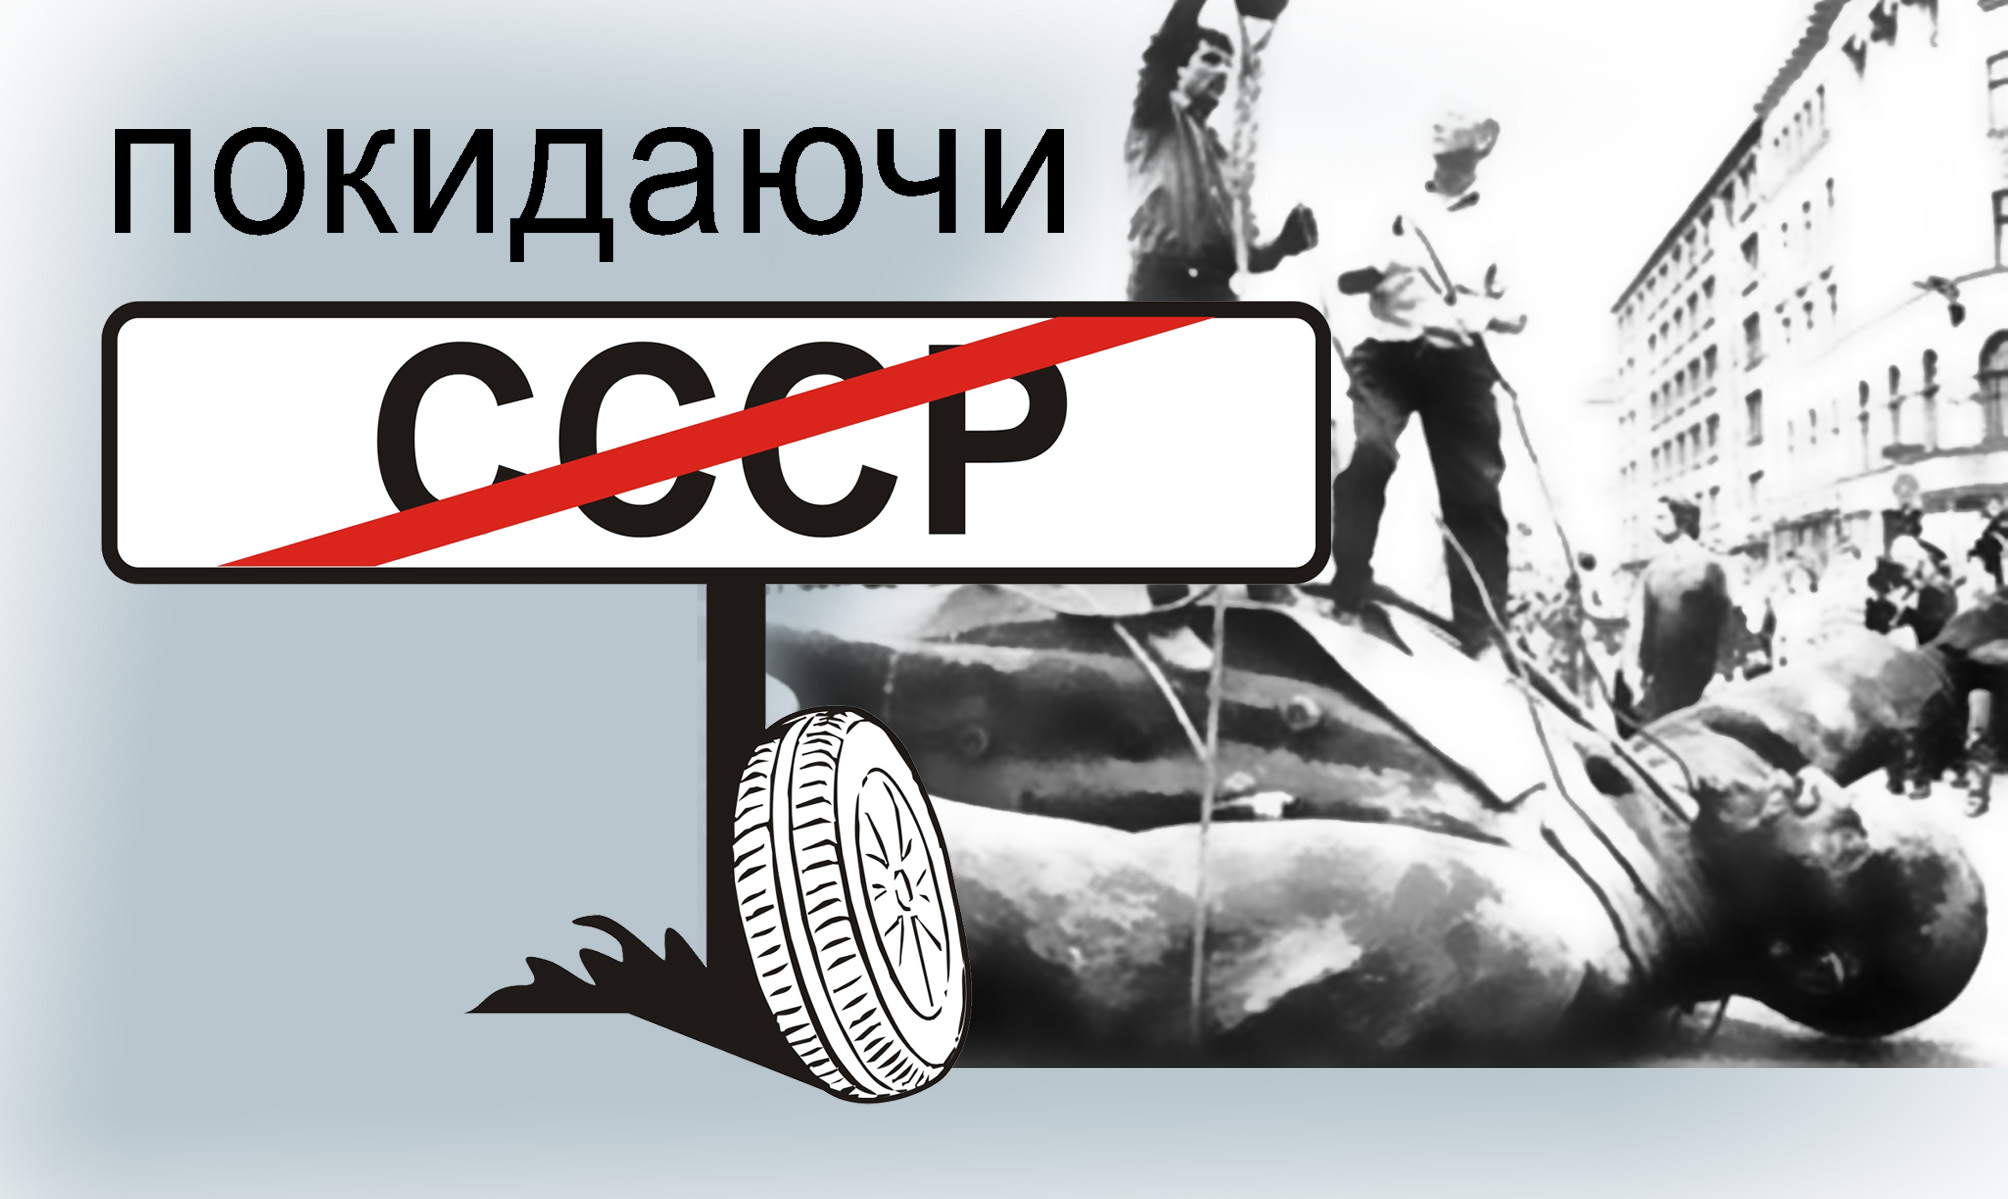 The making and unmaking of revolutions eurozine leaving the ussr a fallen lenin statue with a sign against which a car tire leans as a symbol of the maidan decommunization material provided by the biocorpaavc Choice Image